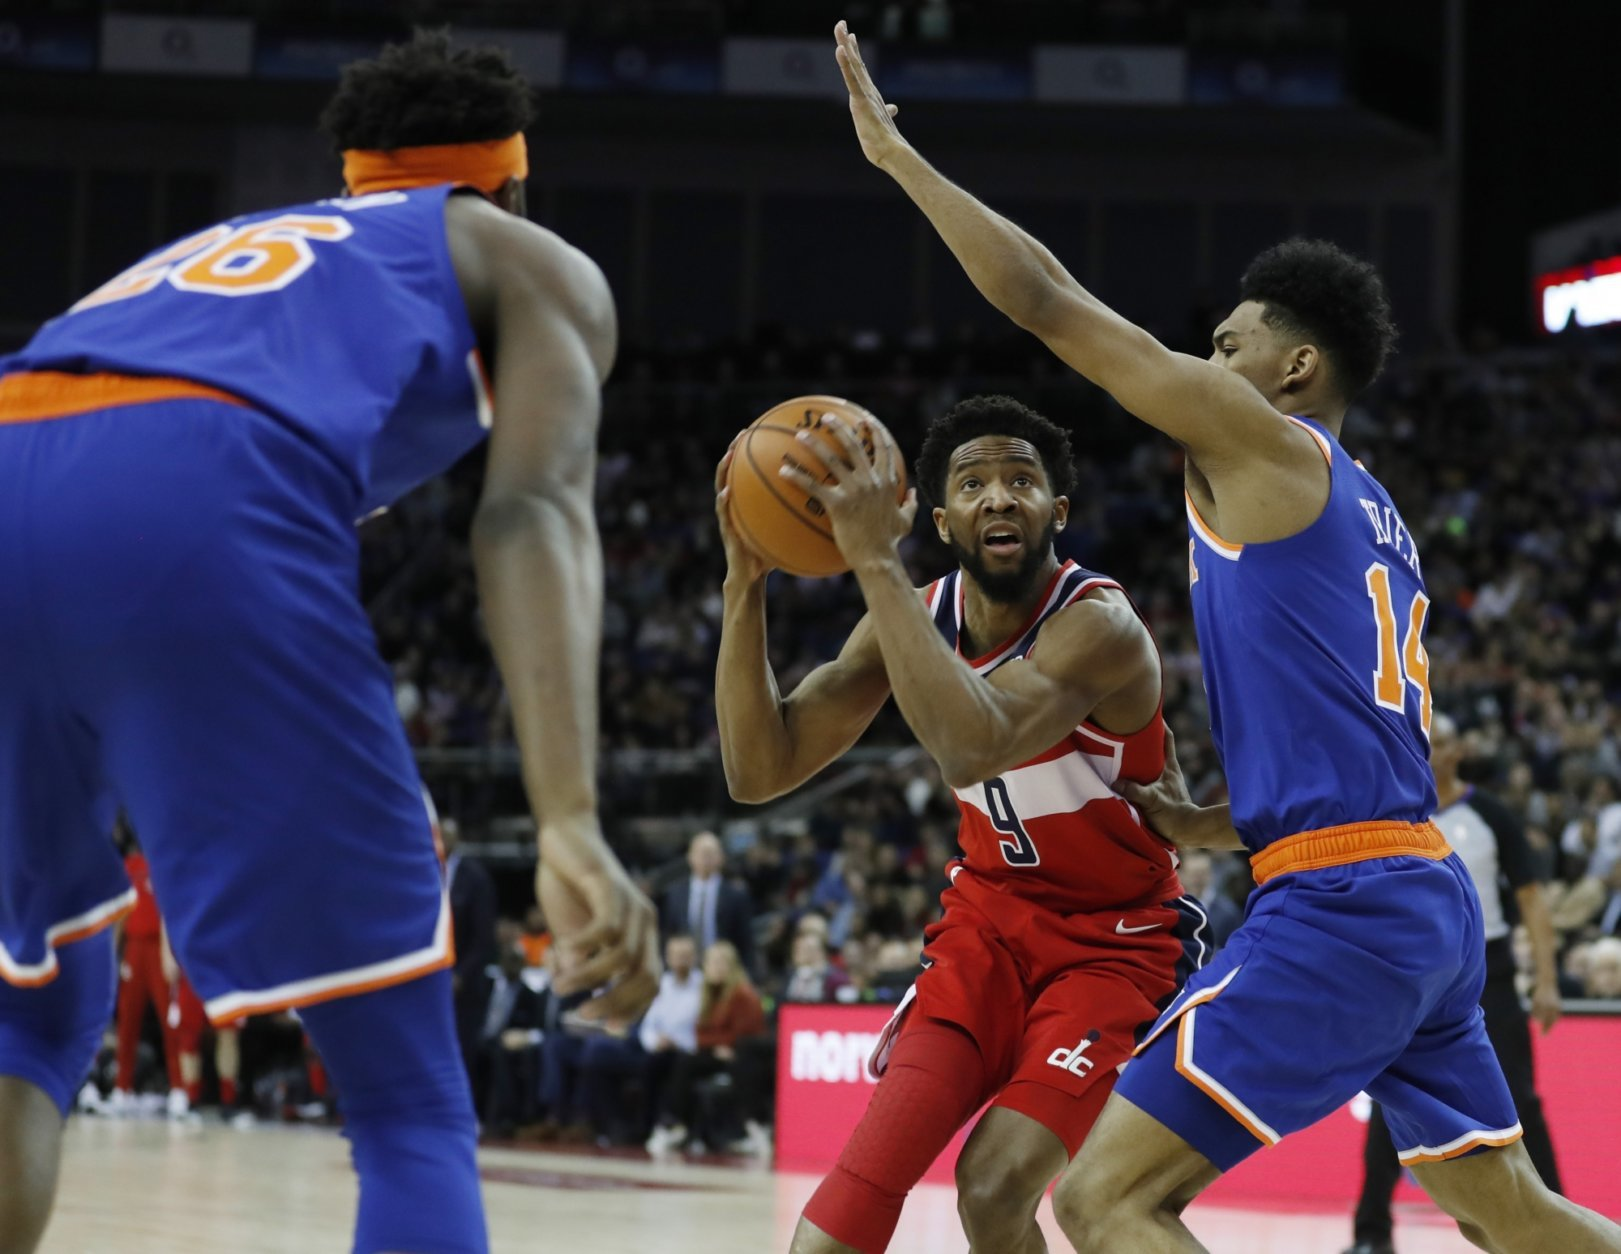 Washington Wizards guard Chasson Randle (9) drives to the basket as New York Knicks guard Allonzo Trier (14) defends, during an NBA basketball game between New York Knicks and Washington Wizards at the O2 Arena, in London, Thursday, Jan.17, 2019. (AP Photo/Alastair Grant)